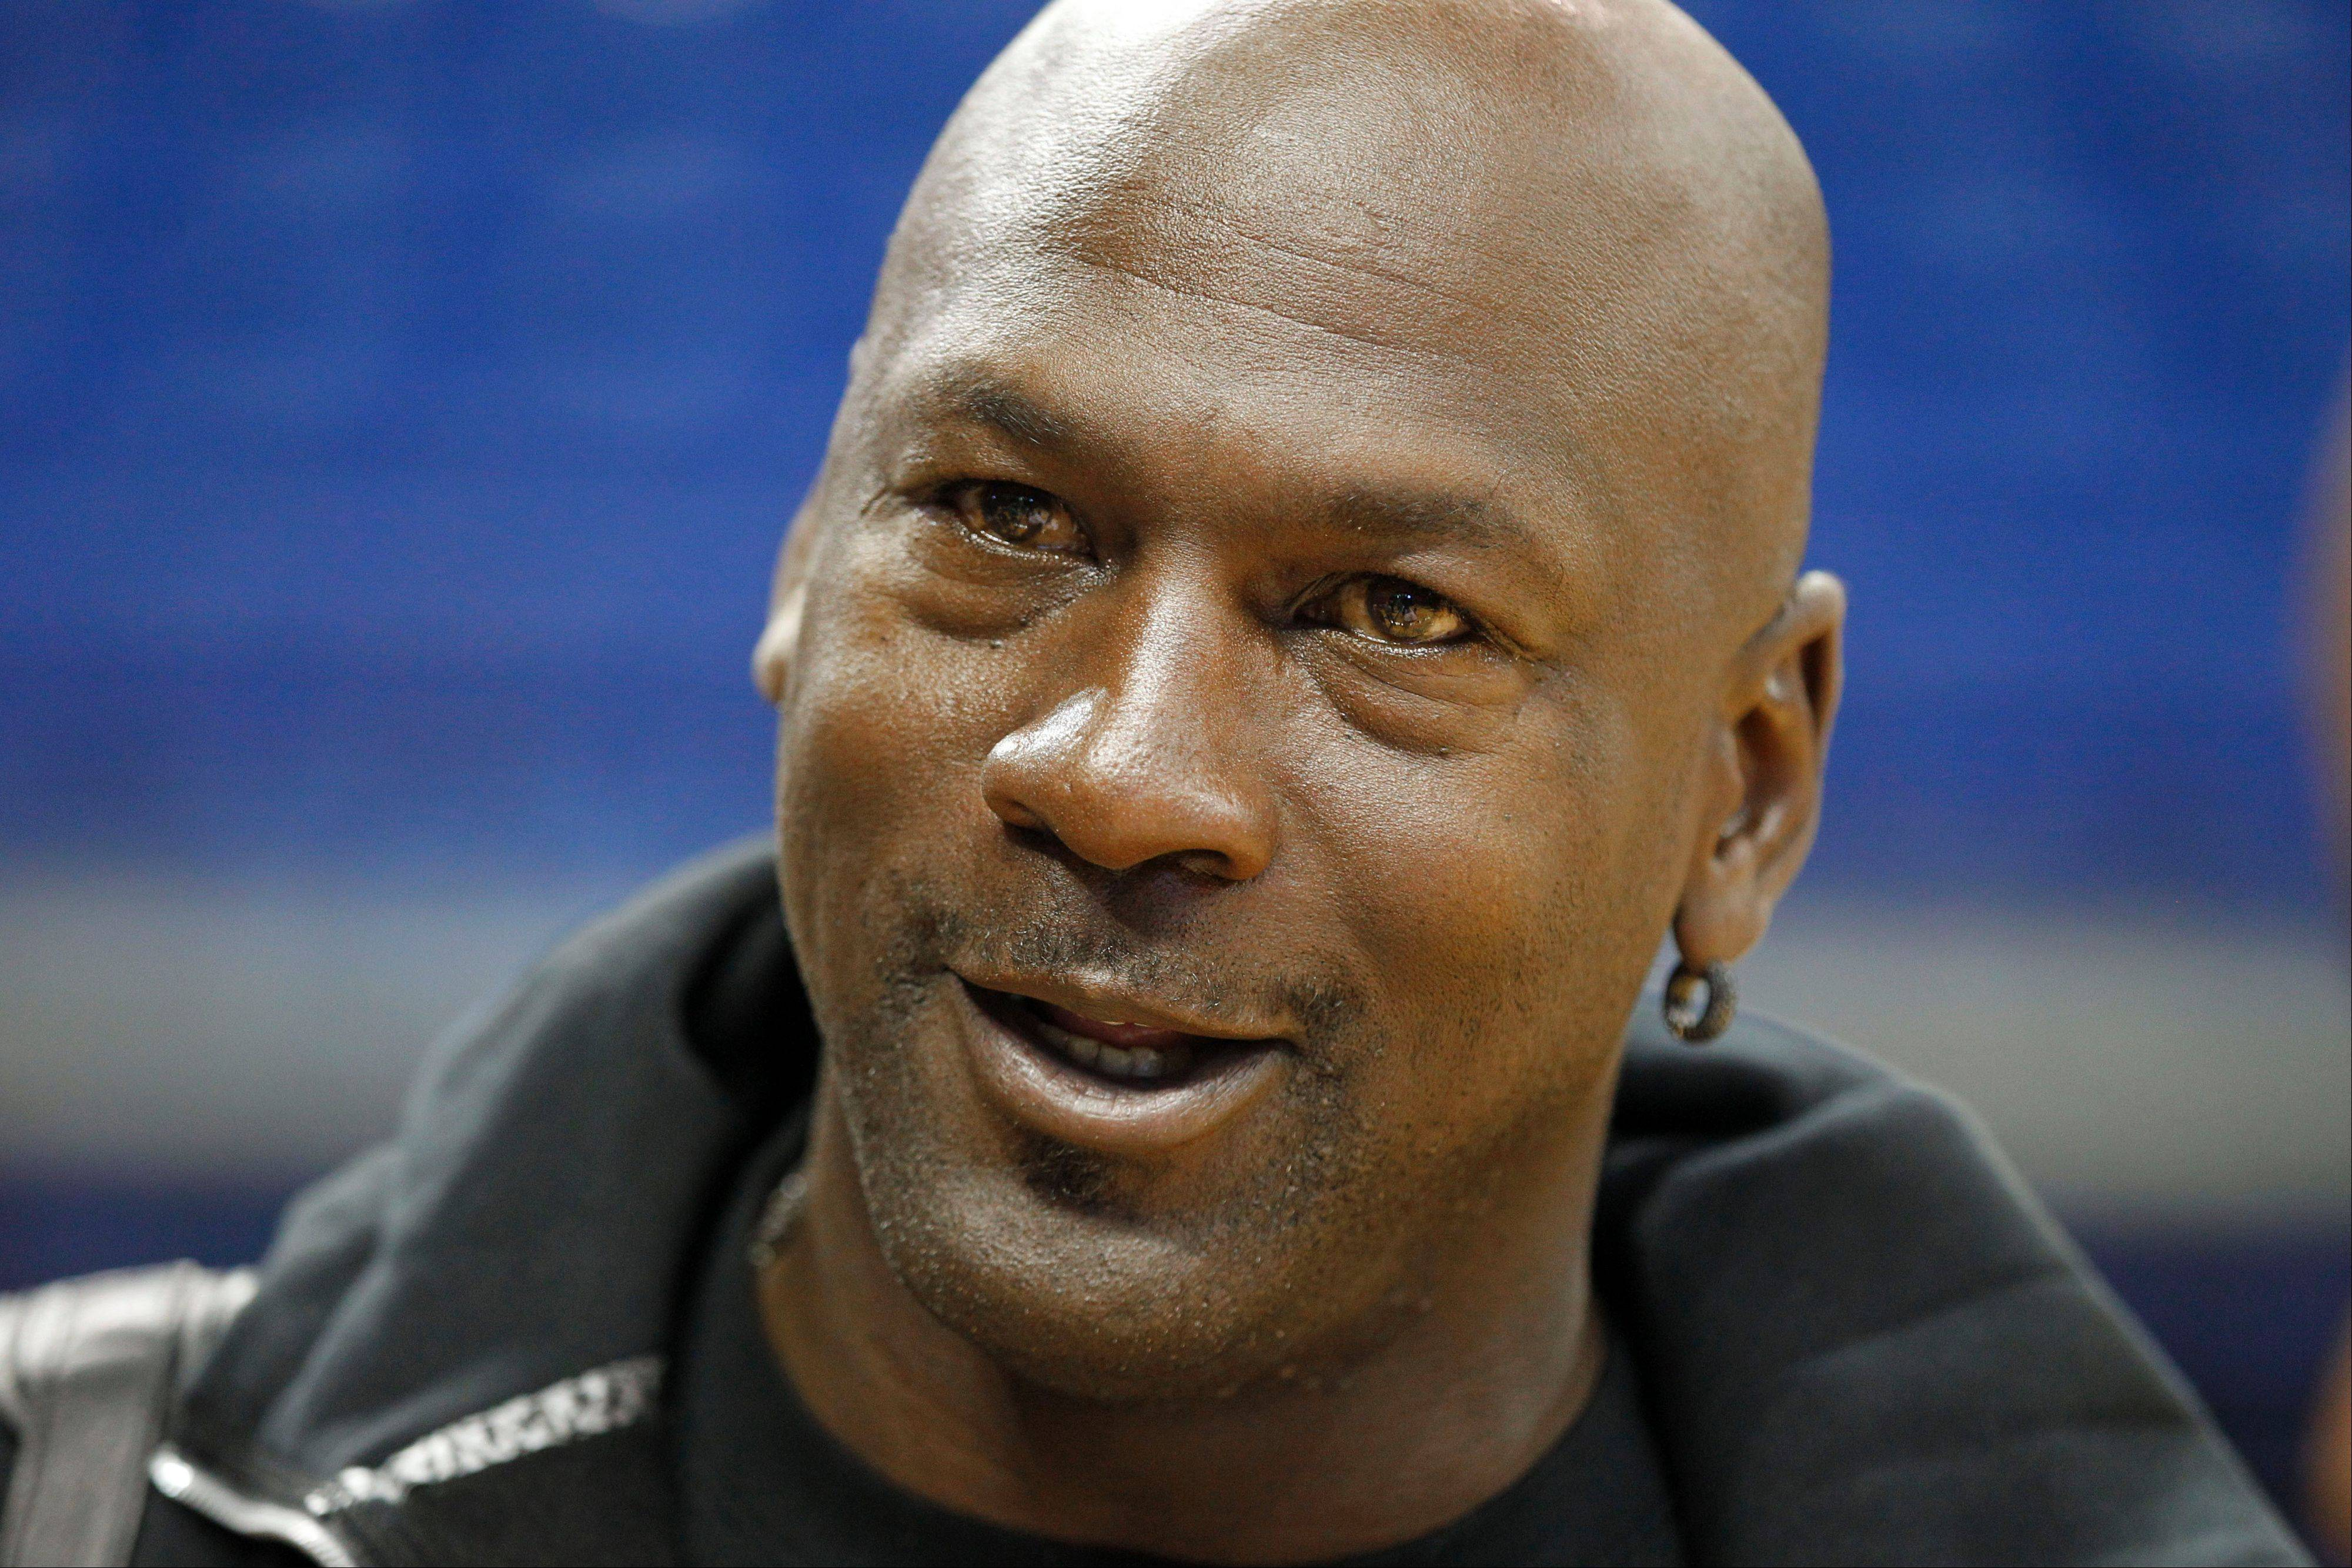 In this Oct. 2, 2012, file photo, Charlotte Bobcats owner Michael Jordan attends a practice at NBA basketball training camp in Asheville, N.C.